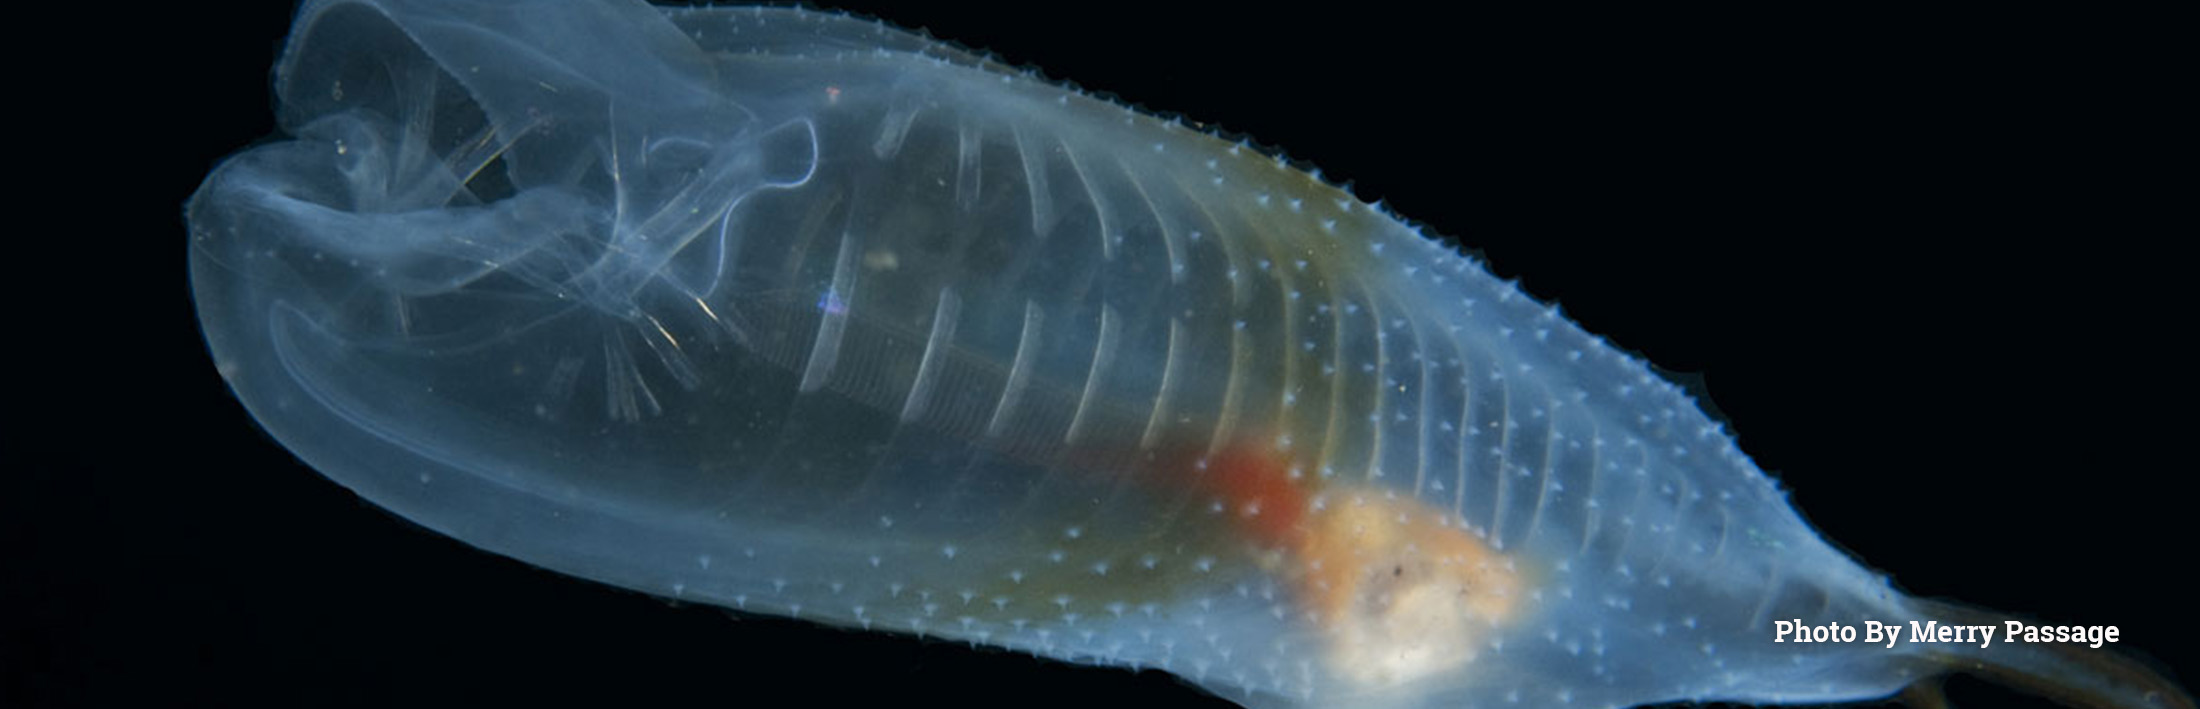 Honorable Mention Large Salp, Redondo Beach, by Merry Passage